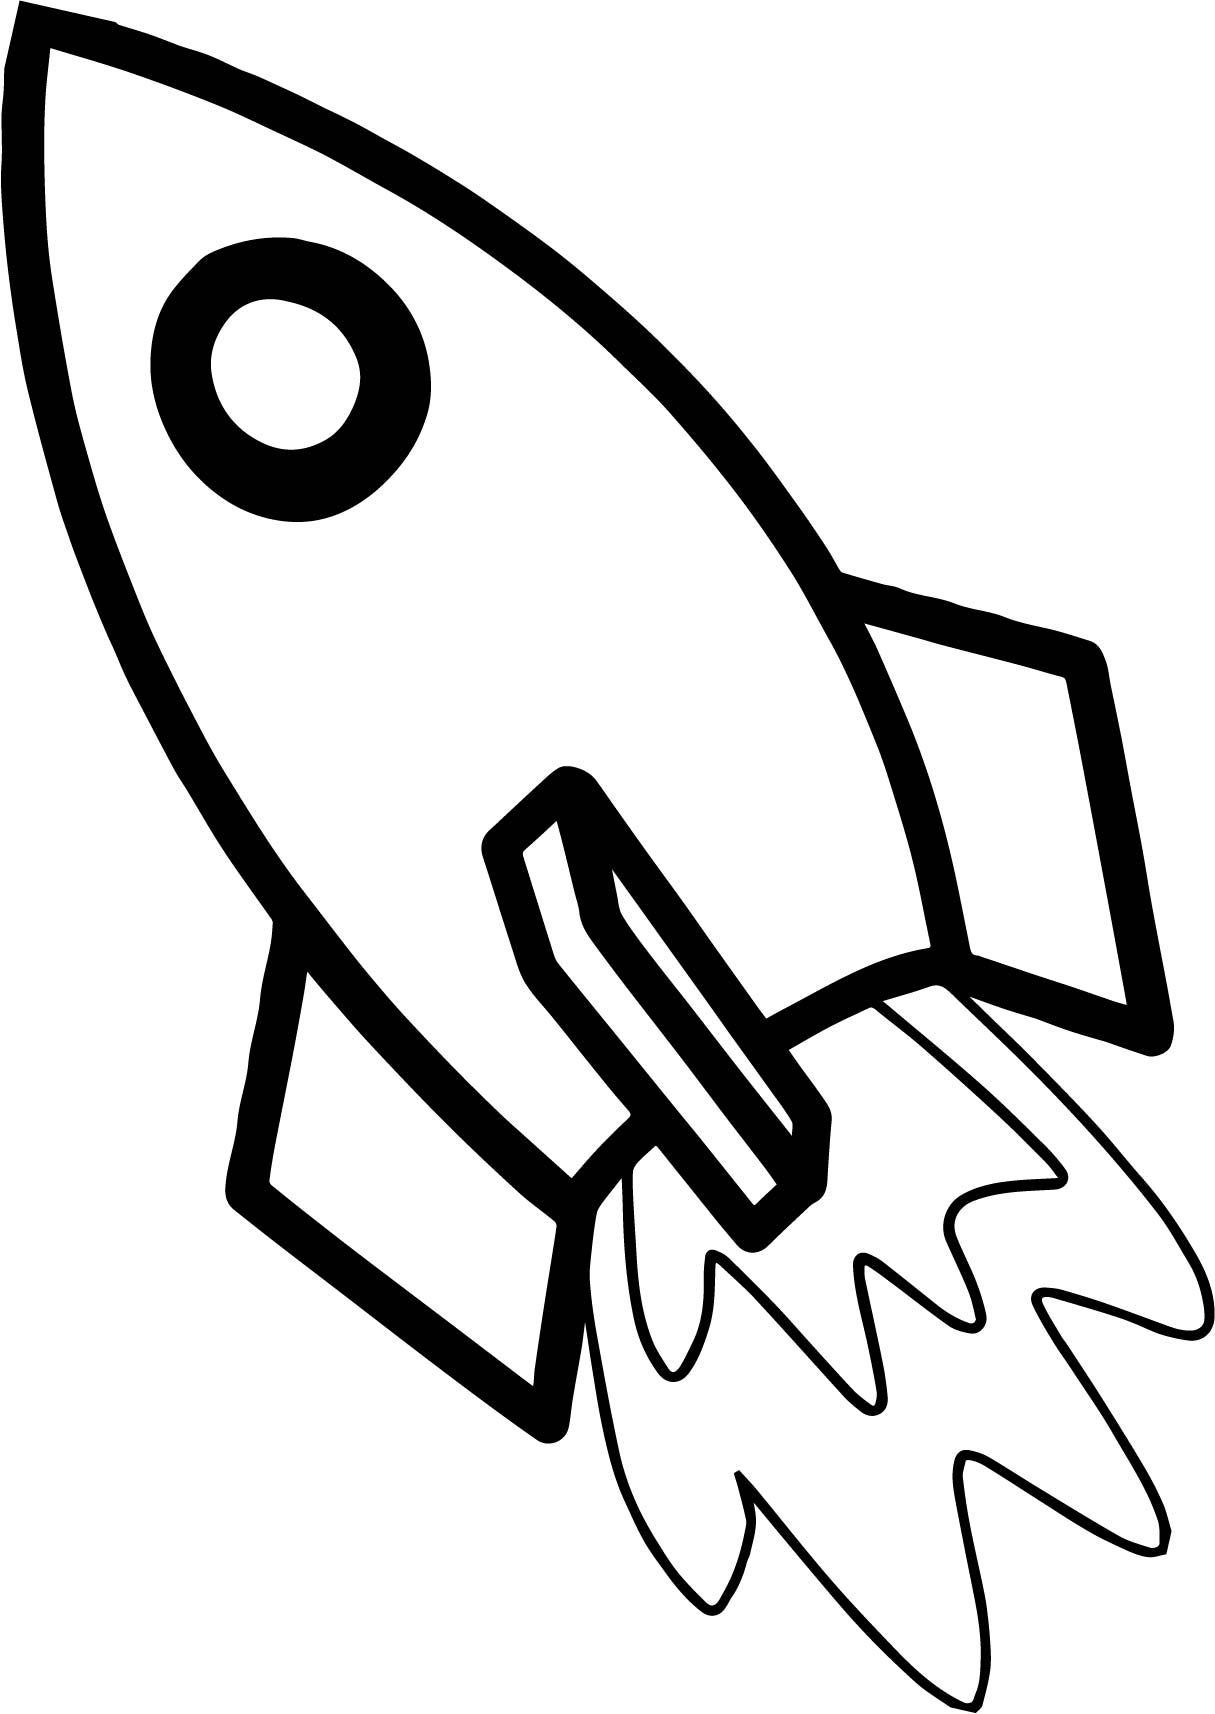 Astronaut Rocket Coloring Page Space Coloring Pages Coloring Pages Coloring Book Pages